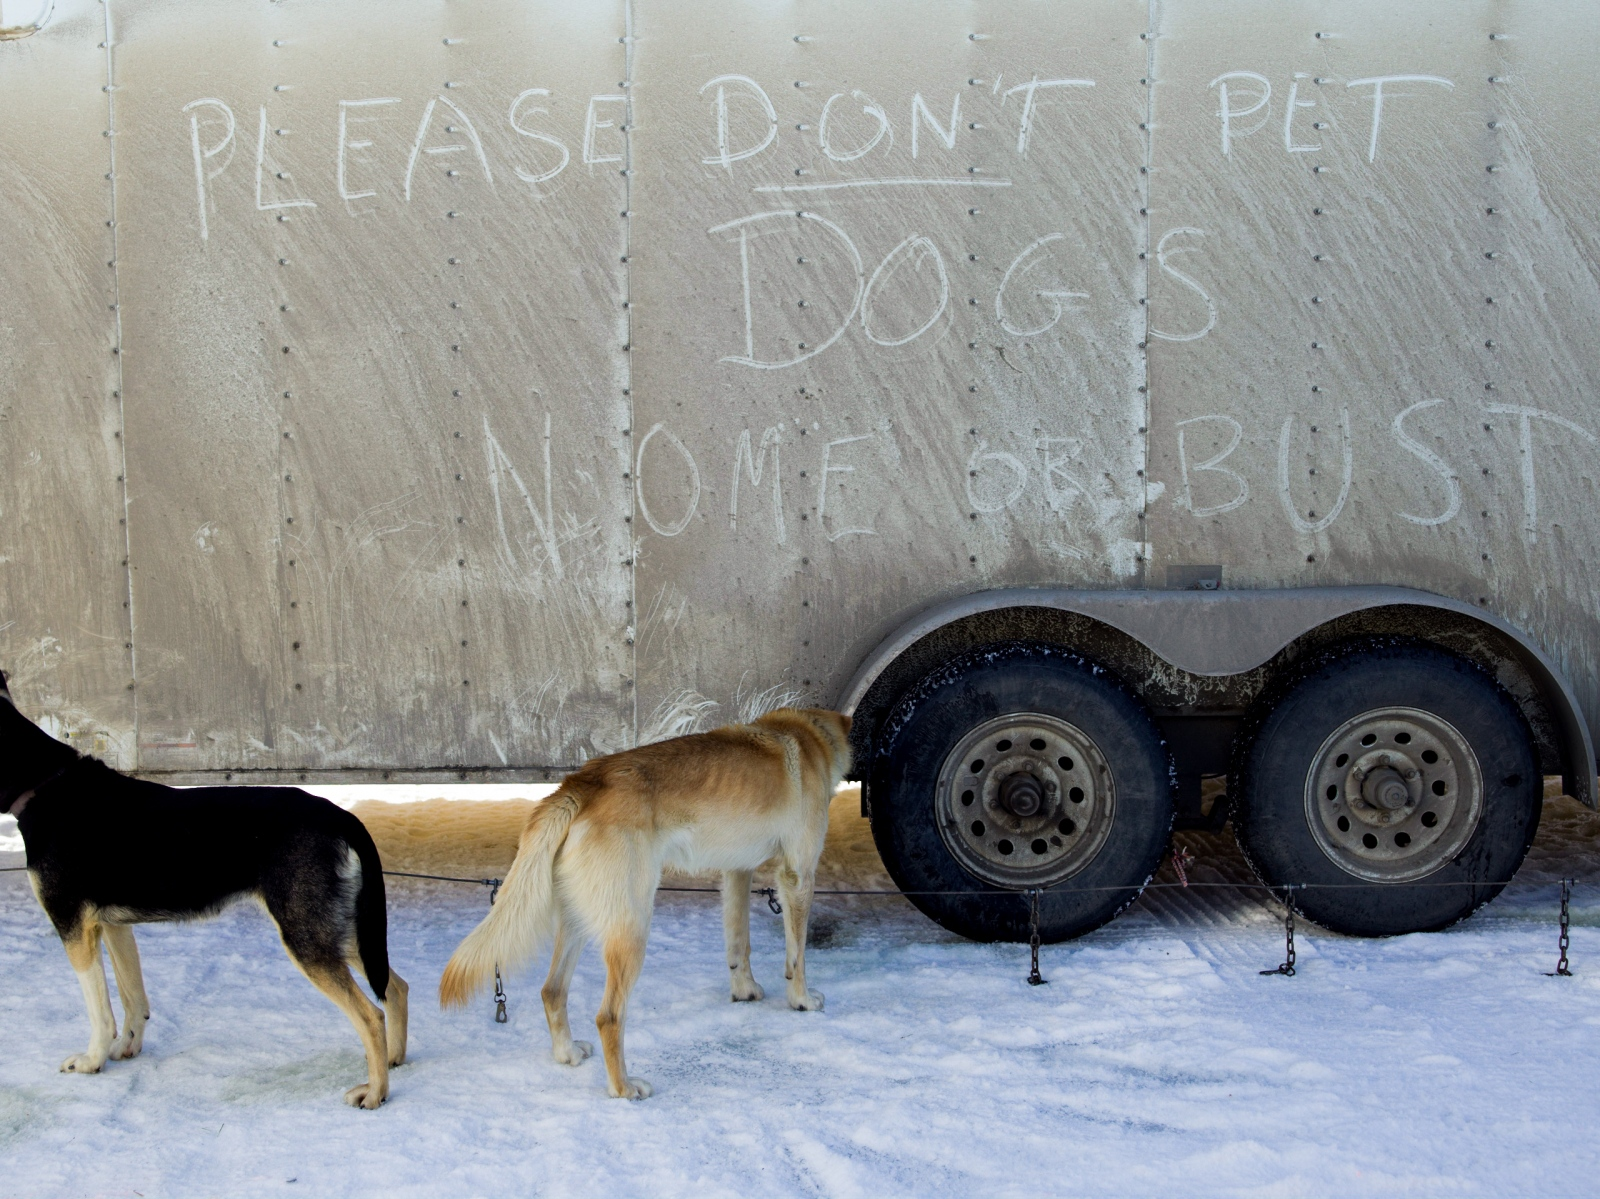 Dog trailer at the 2016 Iditarod restart in Willow, Alaska on March 6, 2016.